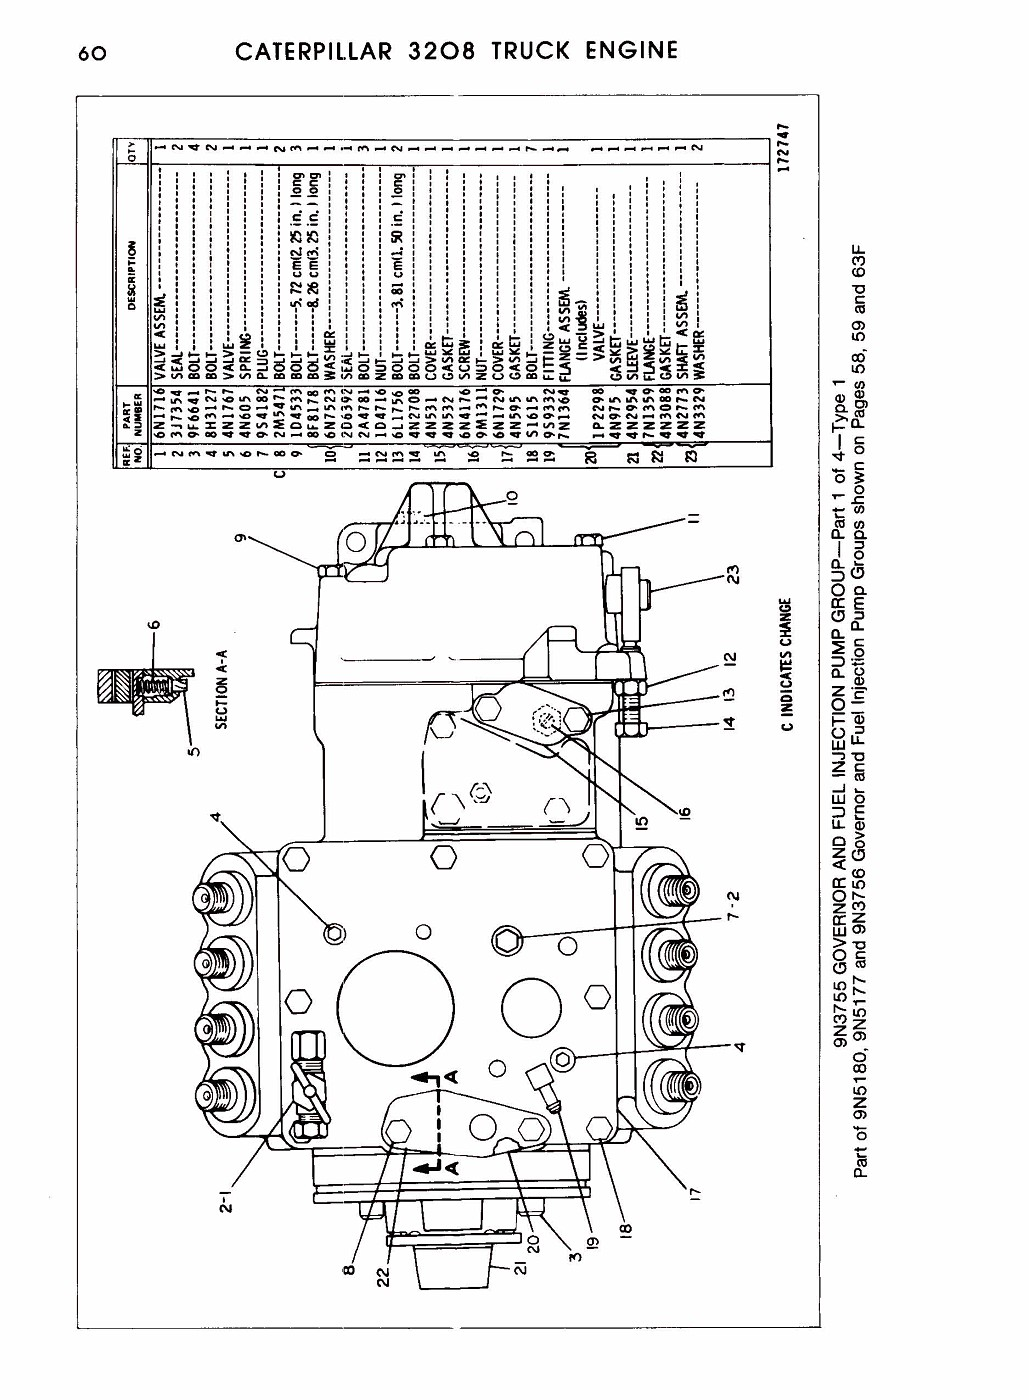 Cat 3208 parts manual / Star coin codes november 2018 january